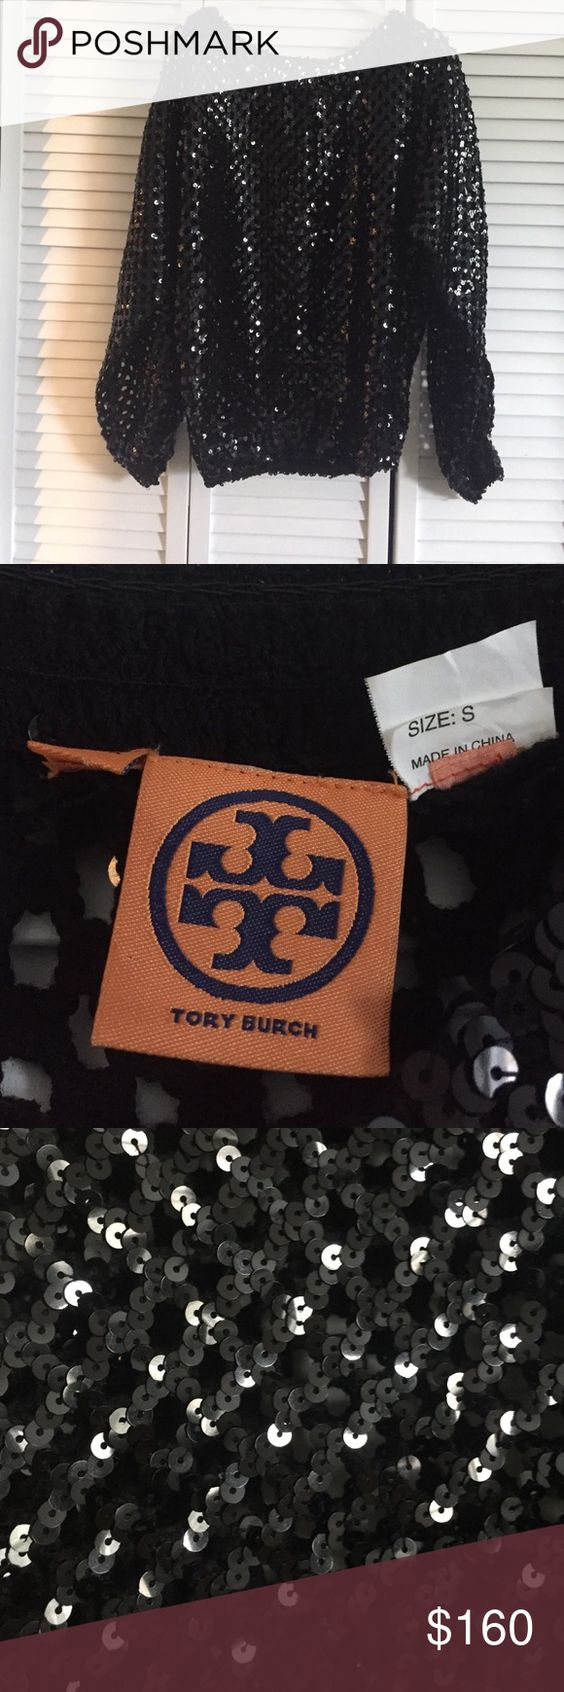 Tory Burch Black Sequin Knit Sweater Beautiful!!! Tory Burch Black Knit Sequin Sweater. Only worn 1 time. No flaws and no damage. Looser fit on top and stretch band around the waist. Tory Burch Sweaters Crew & Scoop Necks